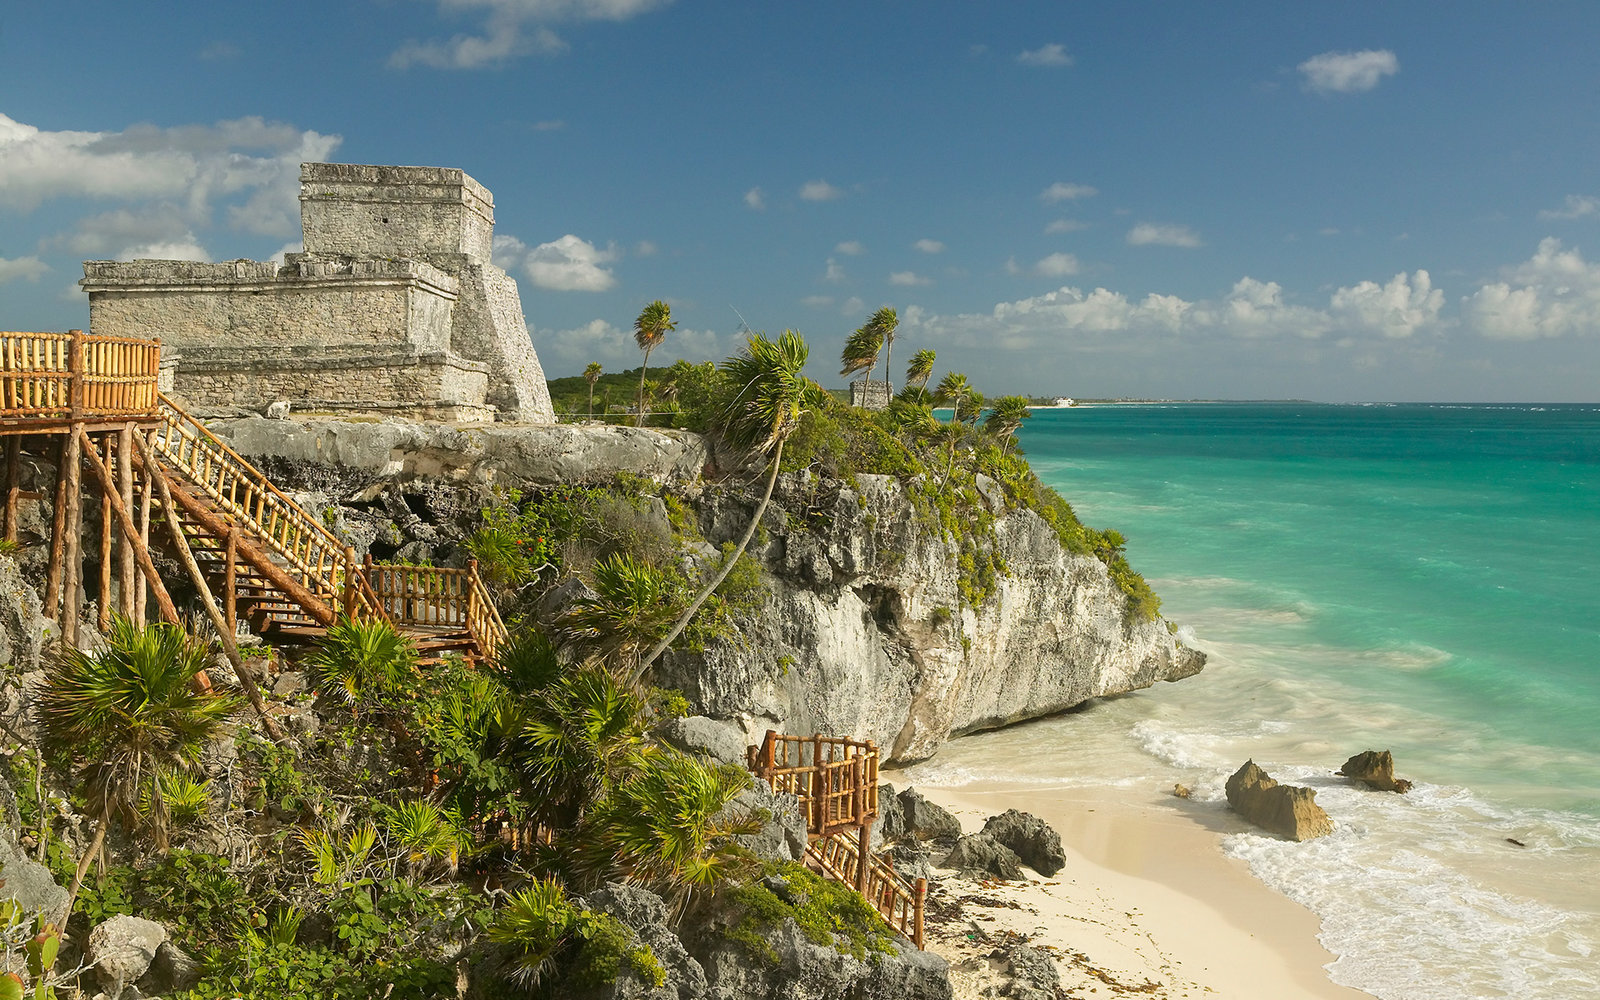 The Mayan ruins in Tulum, Mexico